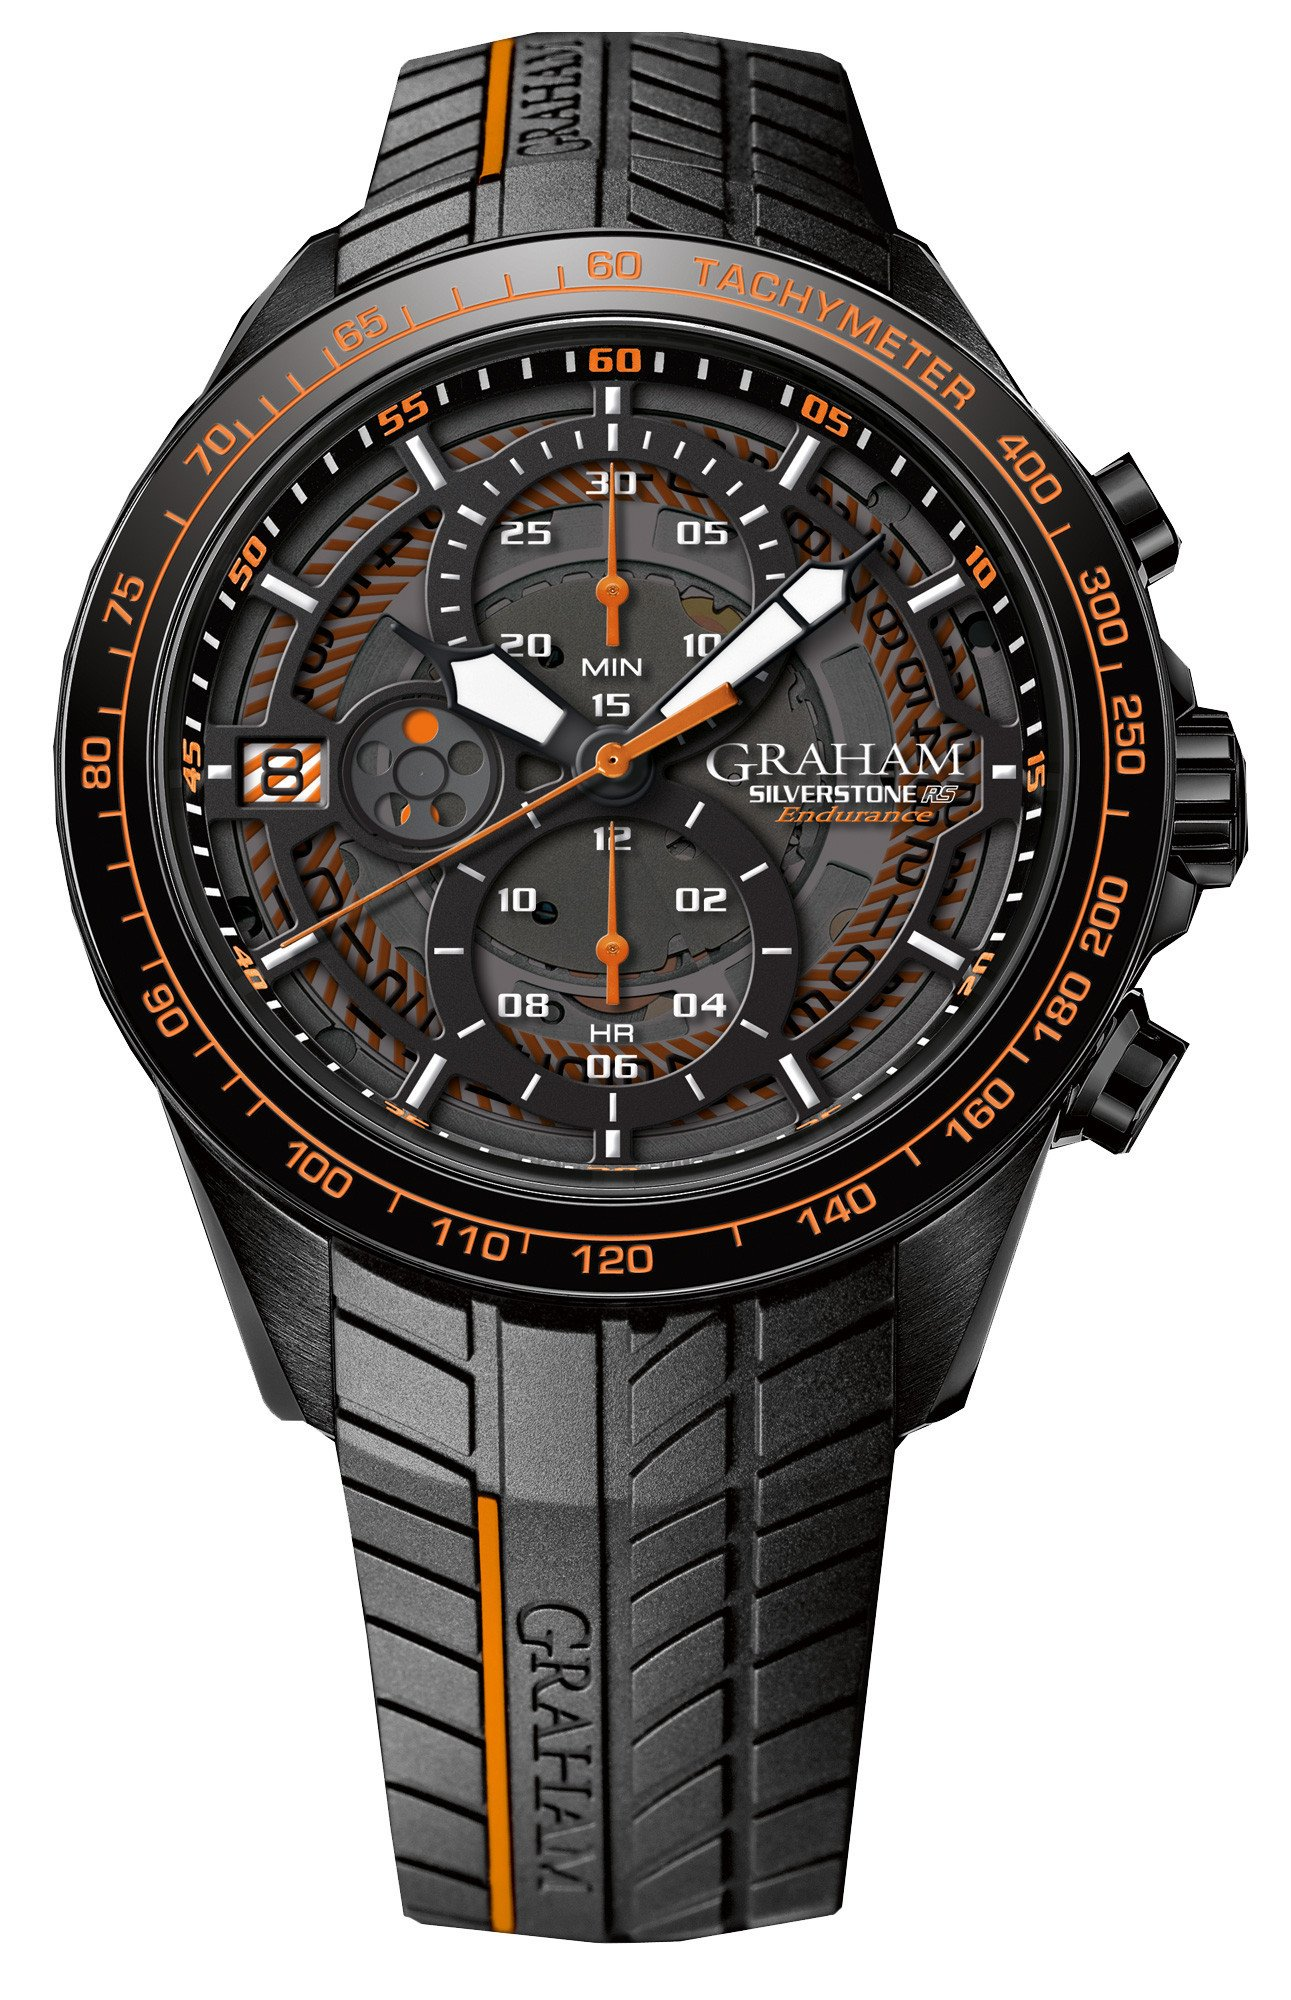 080217-top-10-motorsports-watches-graham-watch-silverstone-rs-endurance-orange-watch